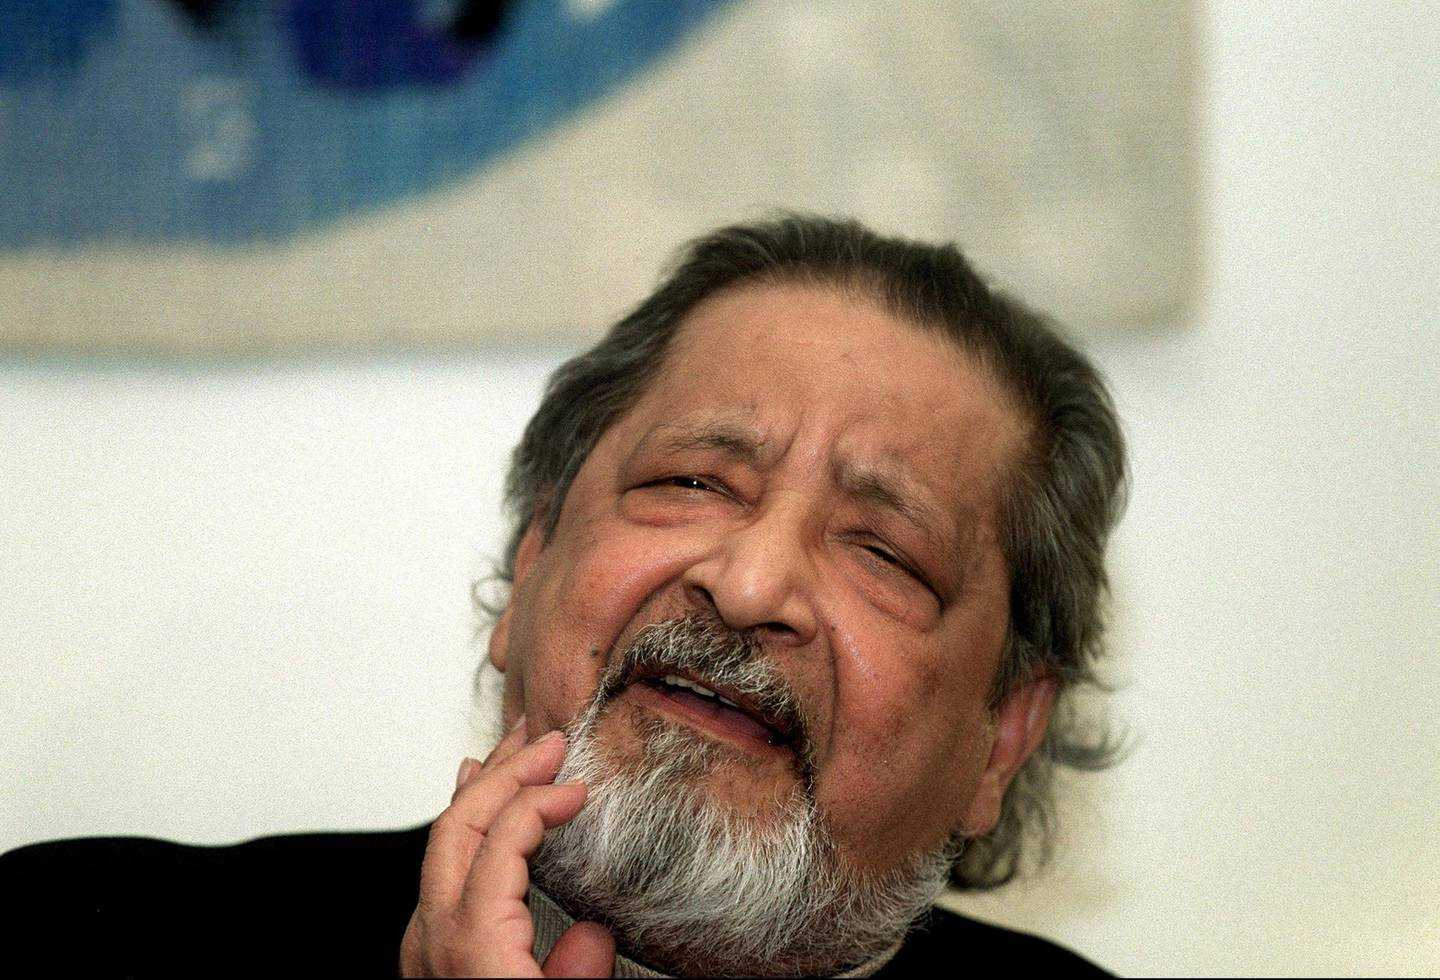 Writer V.S. Naipaul speaks during a press conference upon his arrival at Arlanda Airport, Stockholm, Sweden, December 6, 2001, a few days prior to the Nobel prize award ceremony. Picture taken December 6, 2001. Maja Suslin/TT News Agency/via REUTERS      ATTENTION EDITORS - THIS IMAGE WAS PROVIDED BY A THIRD PARTY. SWEDEN OUT. NO COMMERCIAL OR EDITORIAL SALES IN SWEDEN.